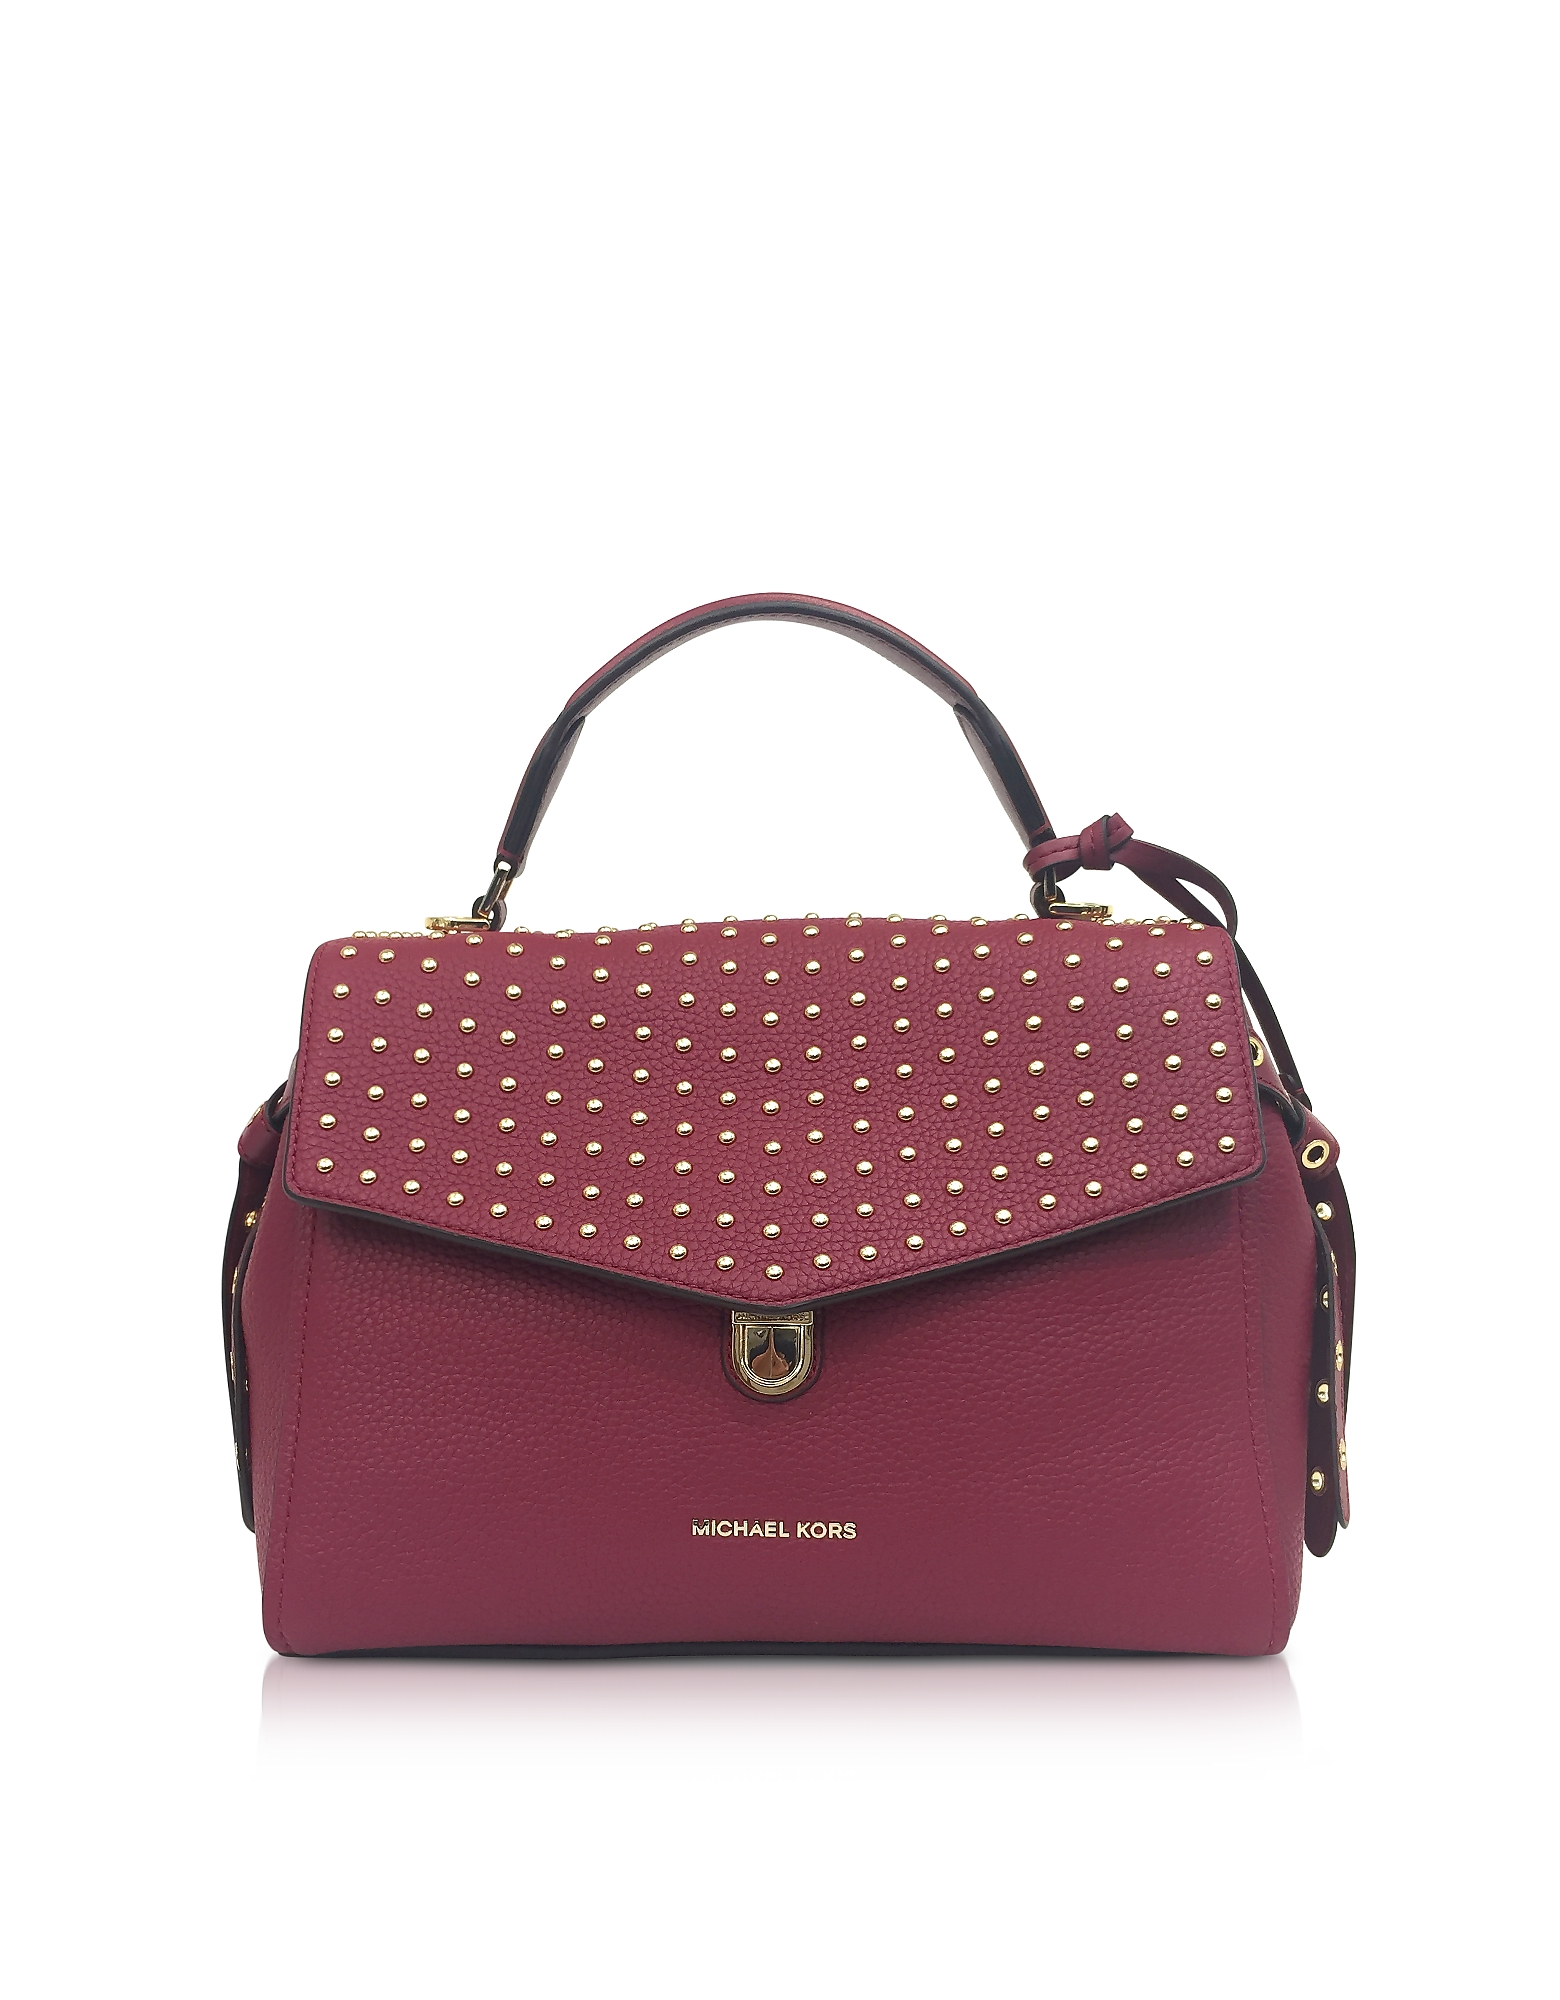 Michael Kors Handbags, Bristol Mulberry Studded Leather Top Handle Satchel Bag